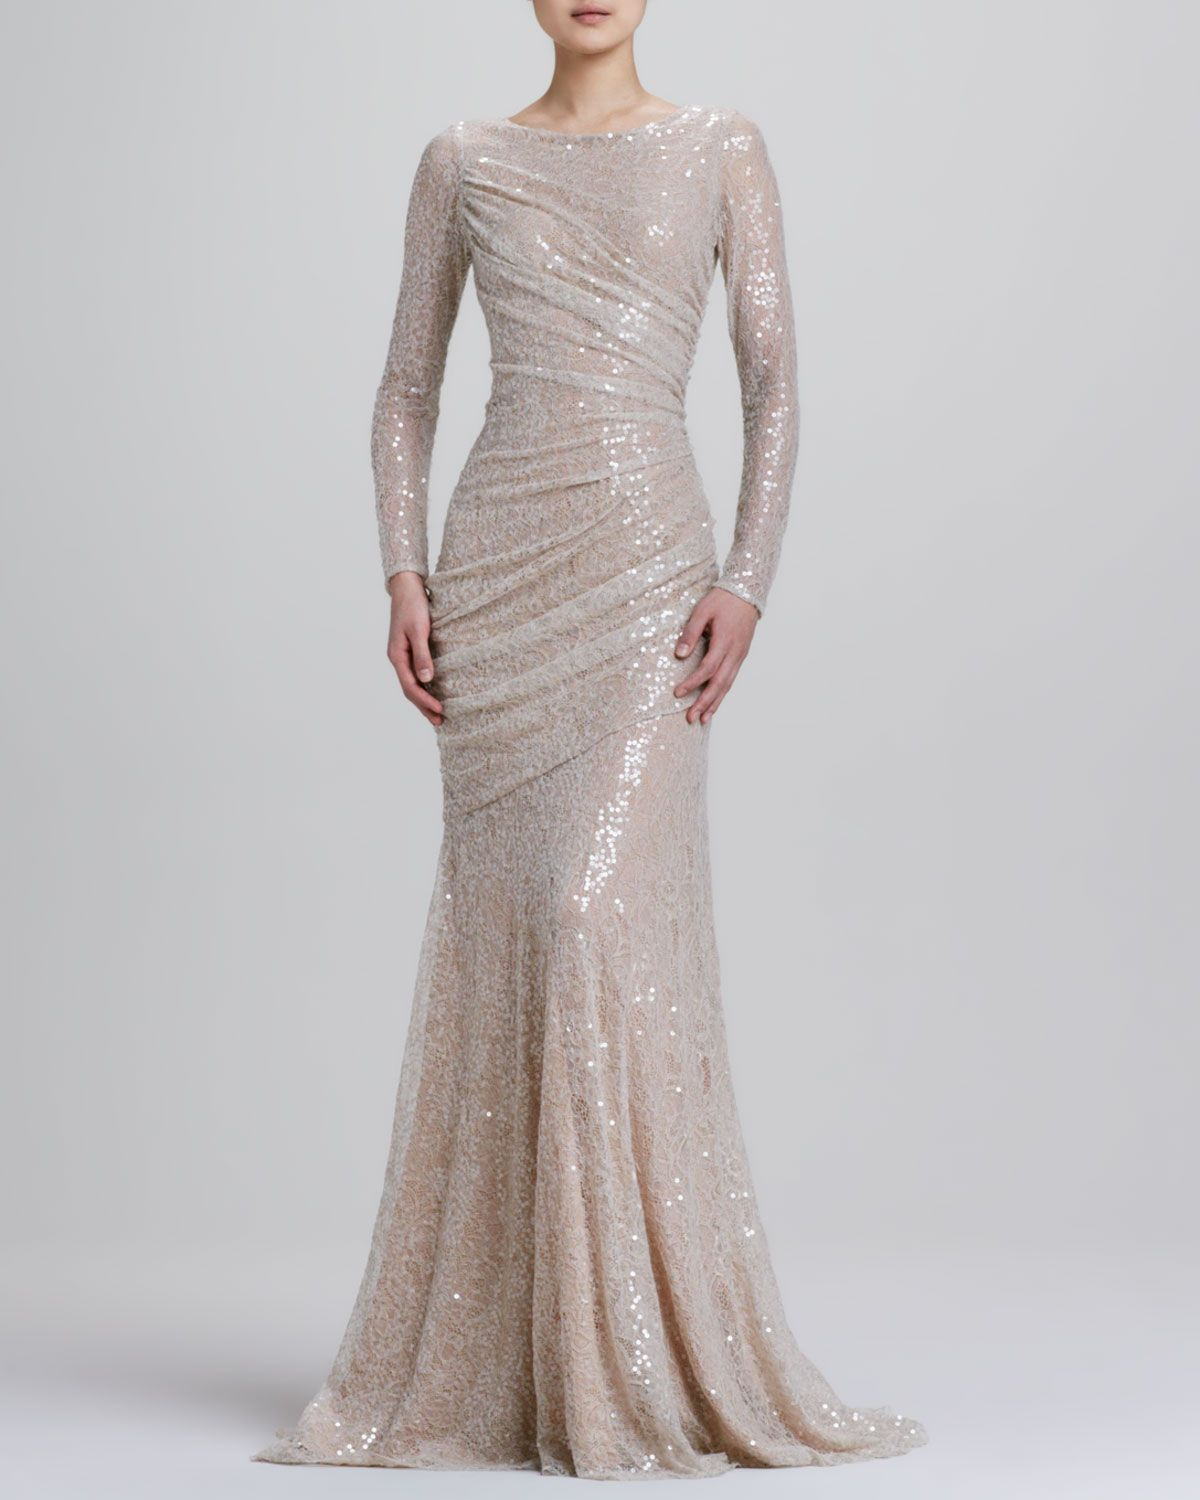 Carmen marc valvo longsleeve sequined mermaid gown nude free